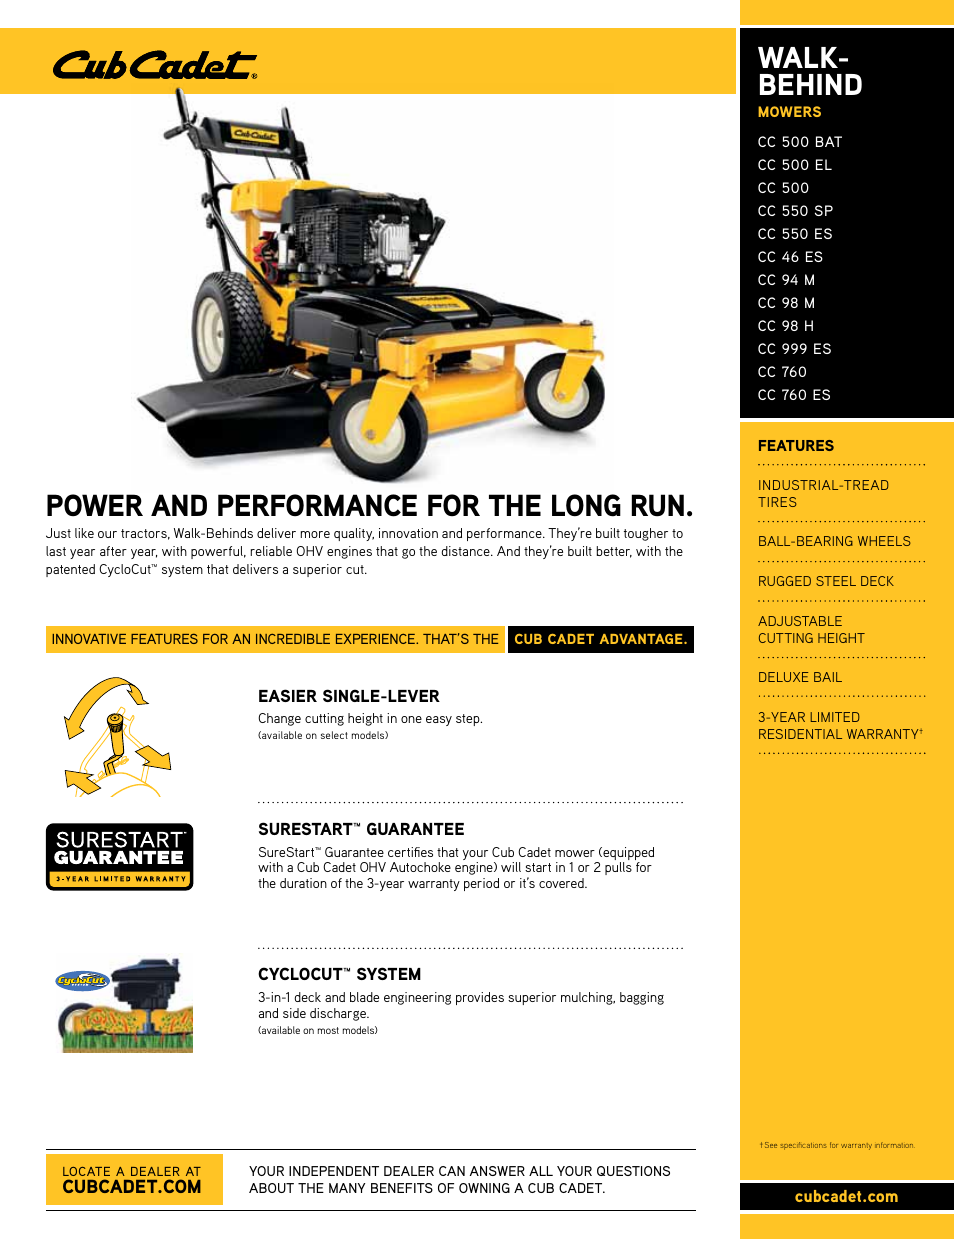 cub cadet cc 550 sp user manual 2 pages also for cc 500 el cc 500 rh manualsdir com Cub Cadet G1548 Cub Cadet Wide Area